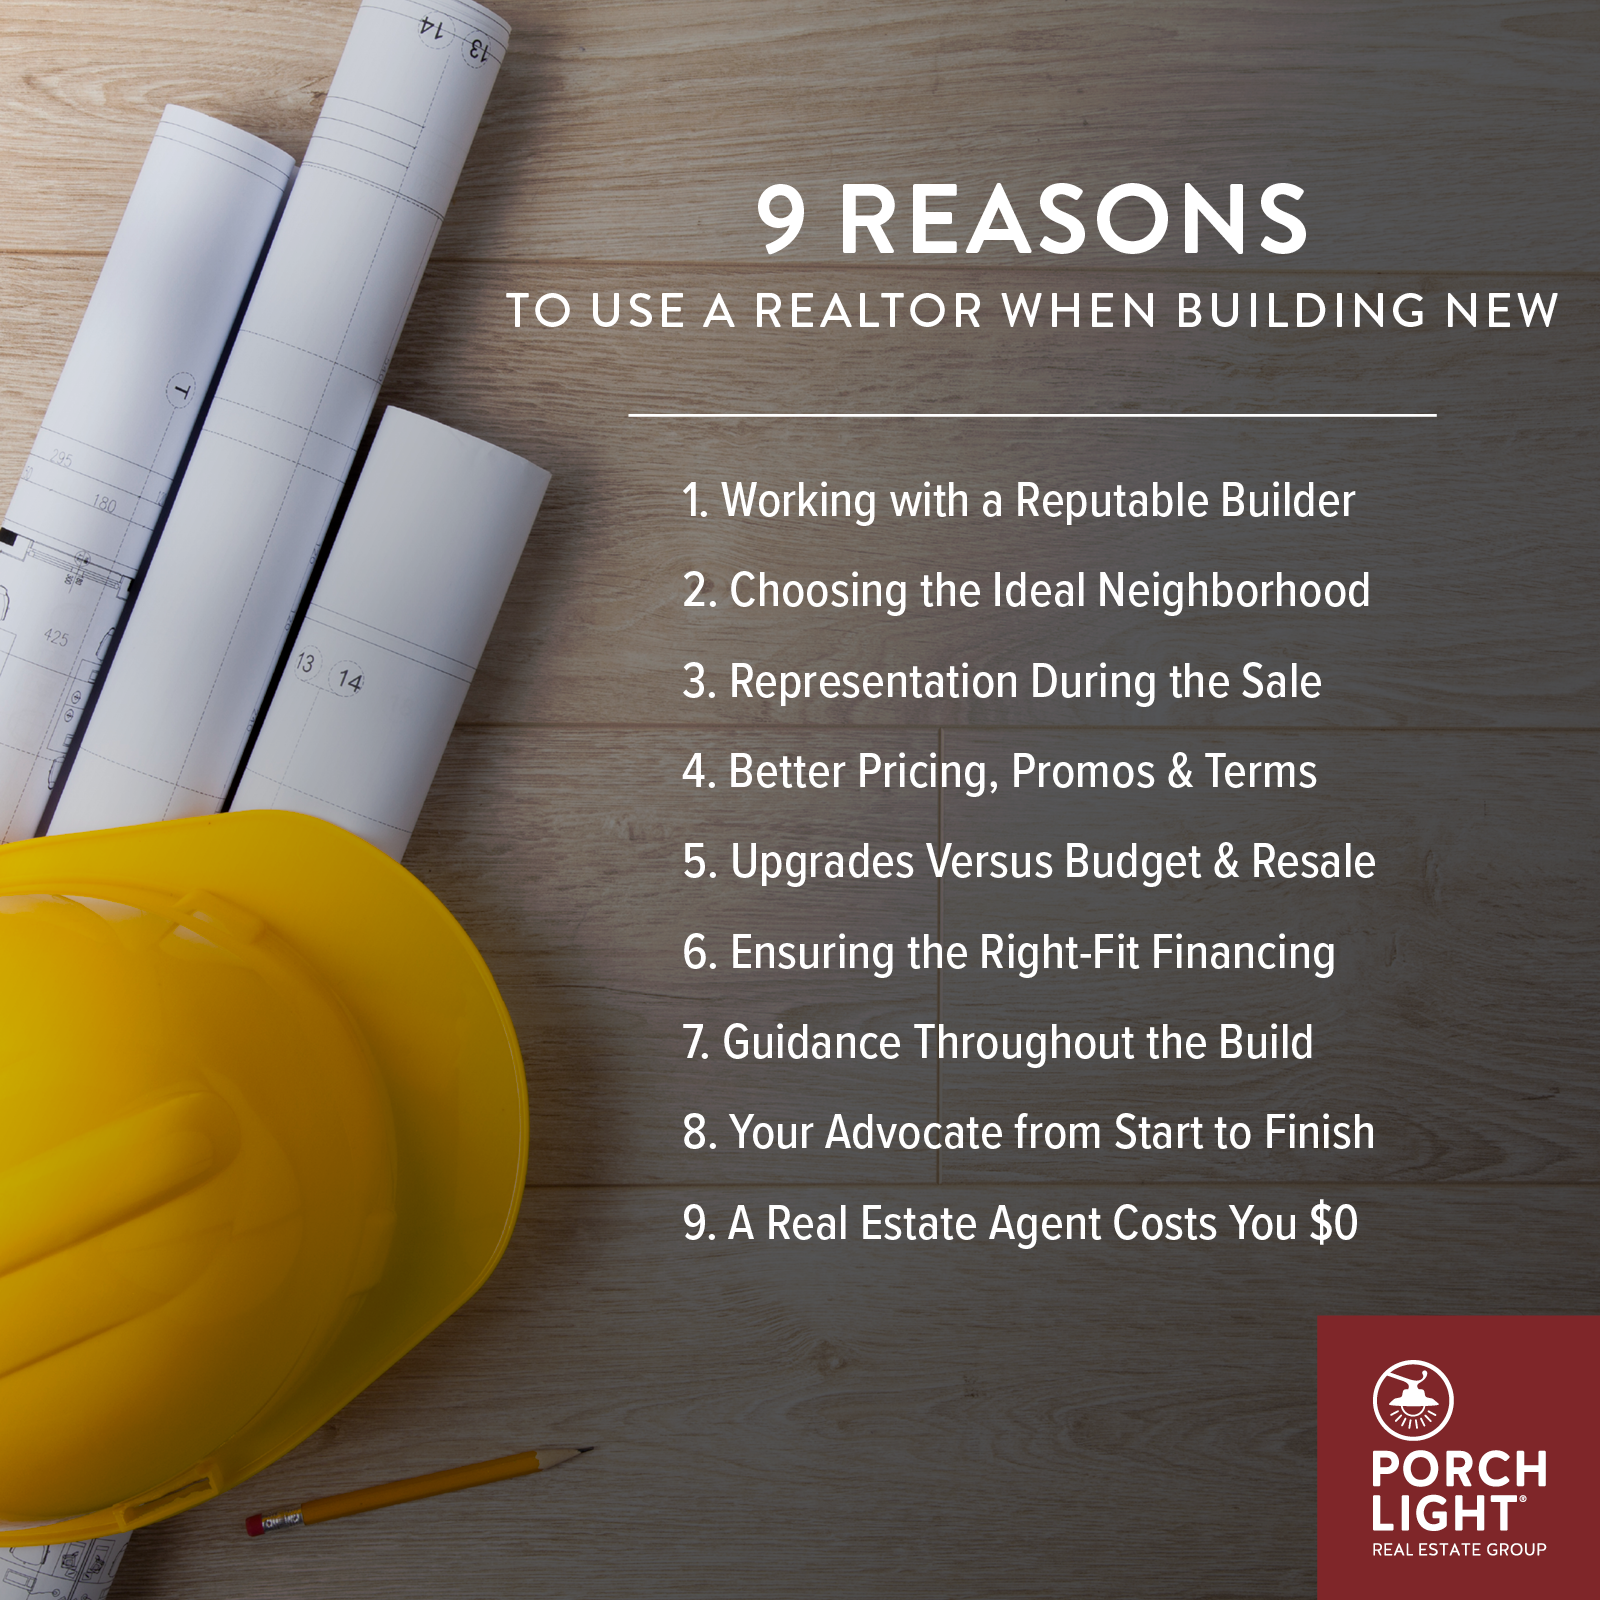 9 Reasons to Use a Realtor When Building New